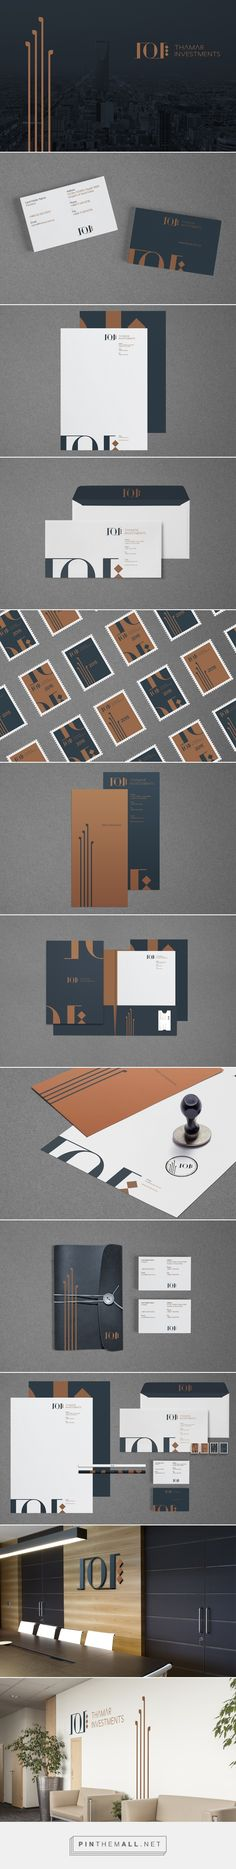 Thamar Investments Branding by Mohd Almousa   Fivestar Branding Agency – Design and Branding Agency & Curated Inspiration Gallery